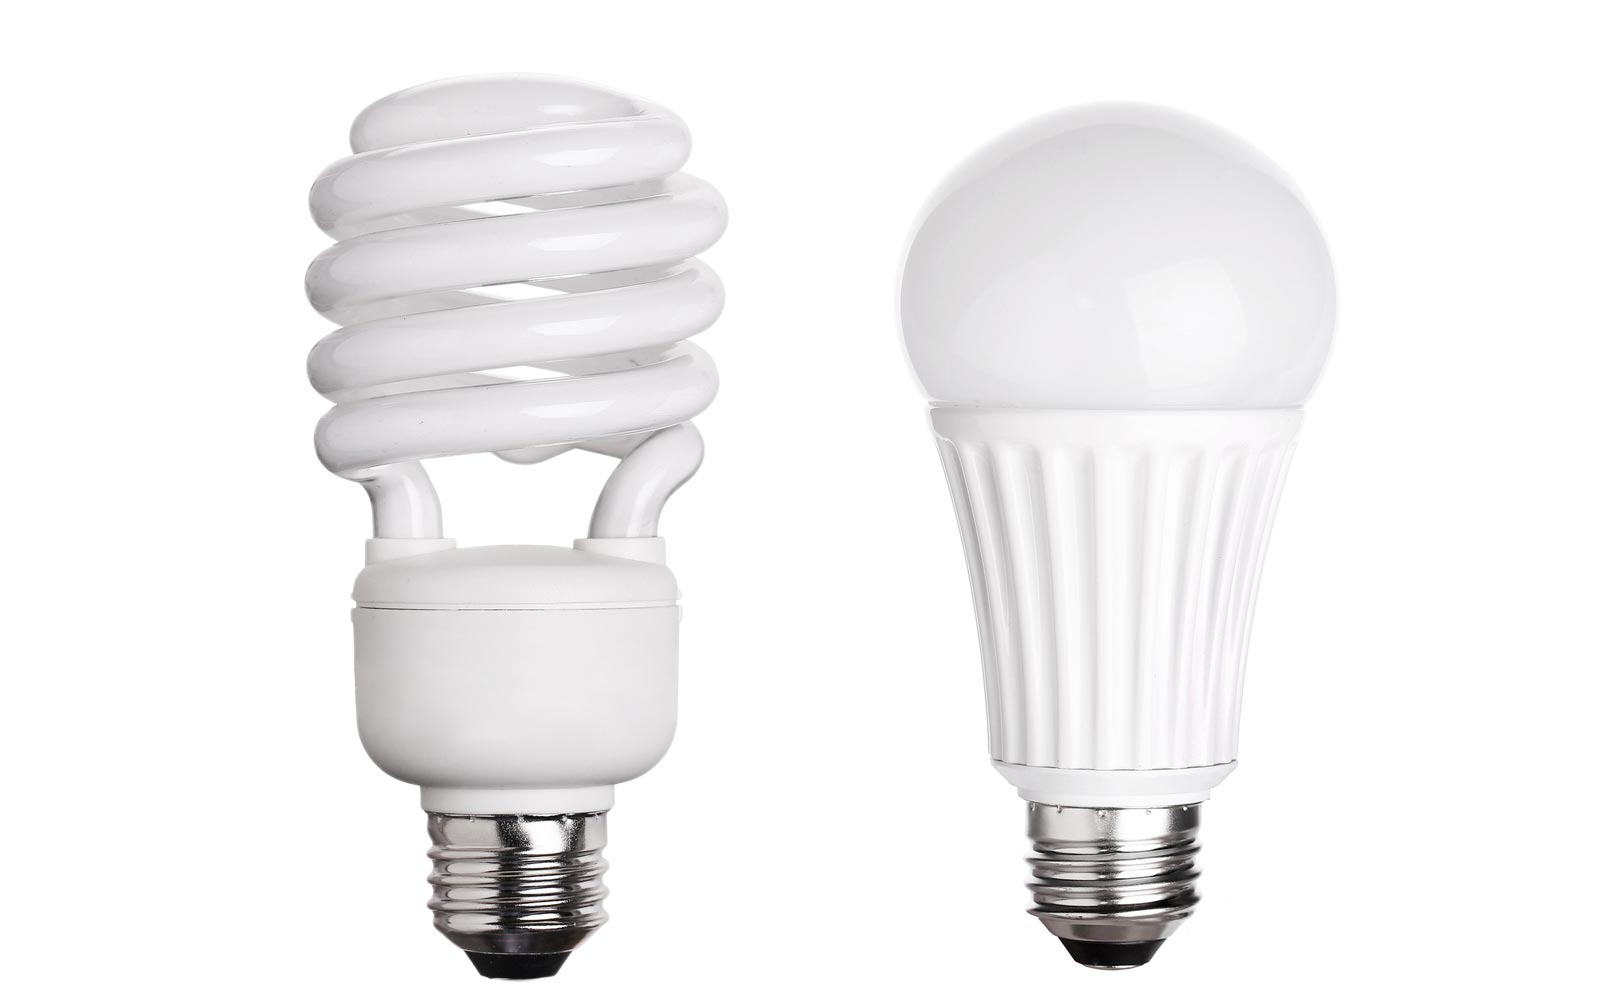 CFL VS LED Lighting: Why CFL Lights Are Believed To Cause Health Problems